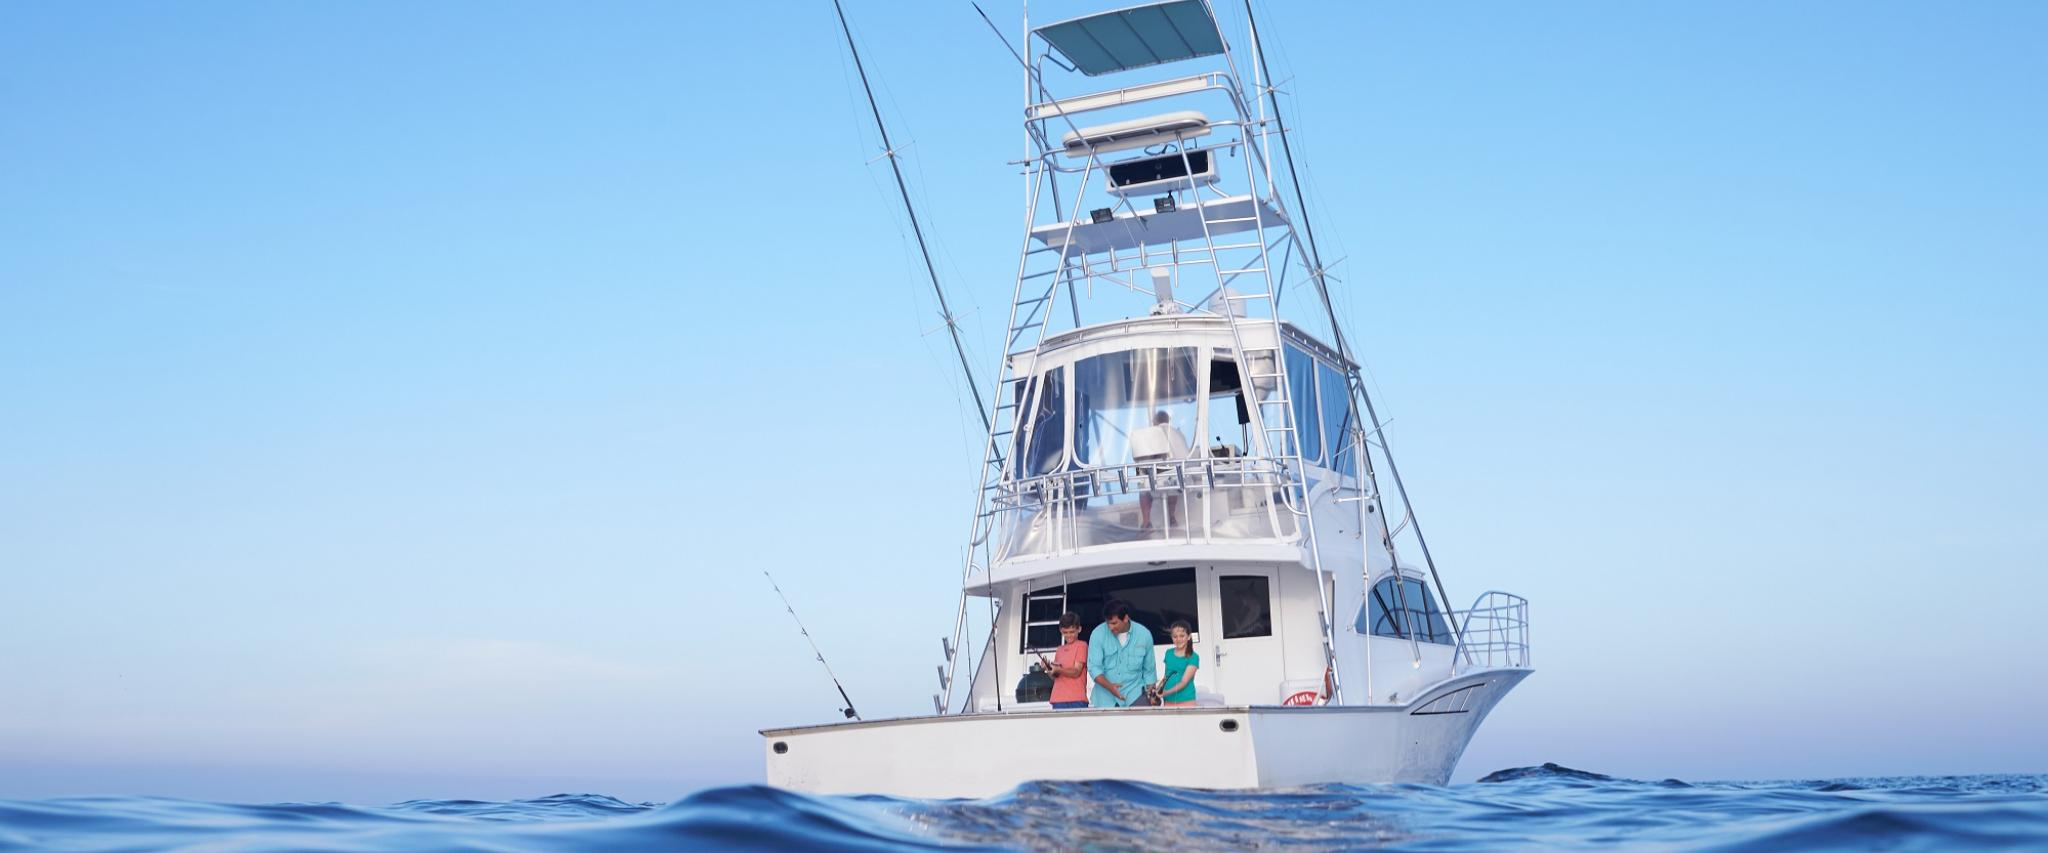 Orange Beach Charter Fishing Boat